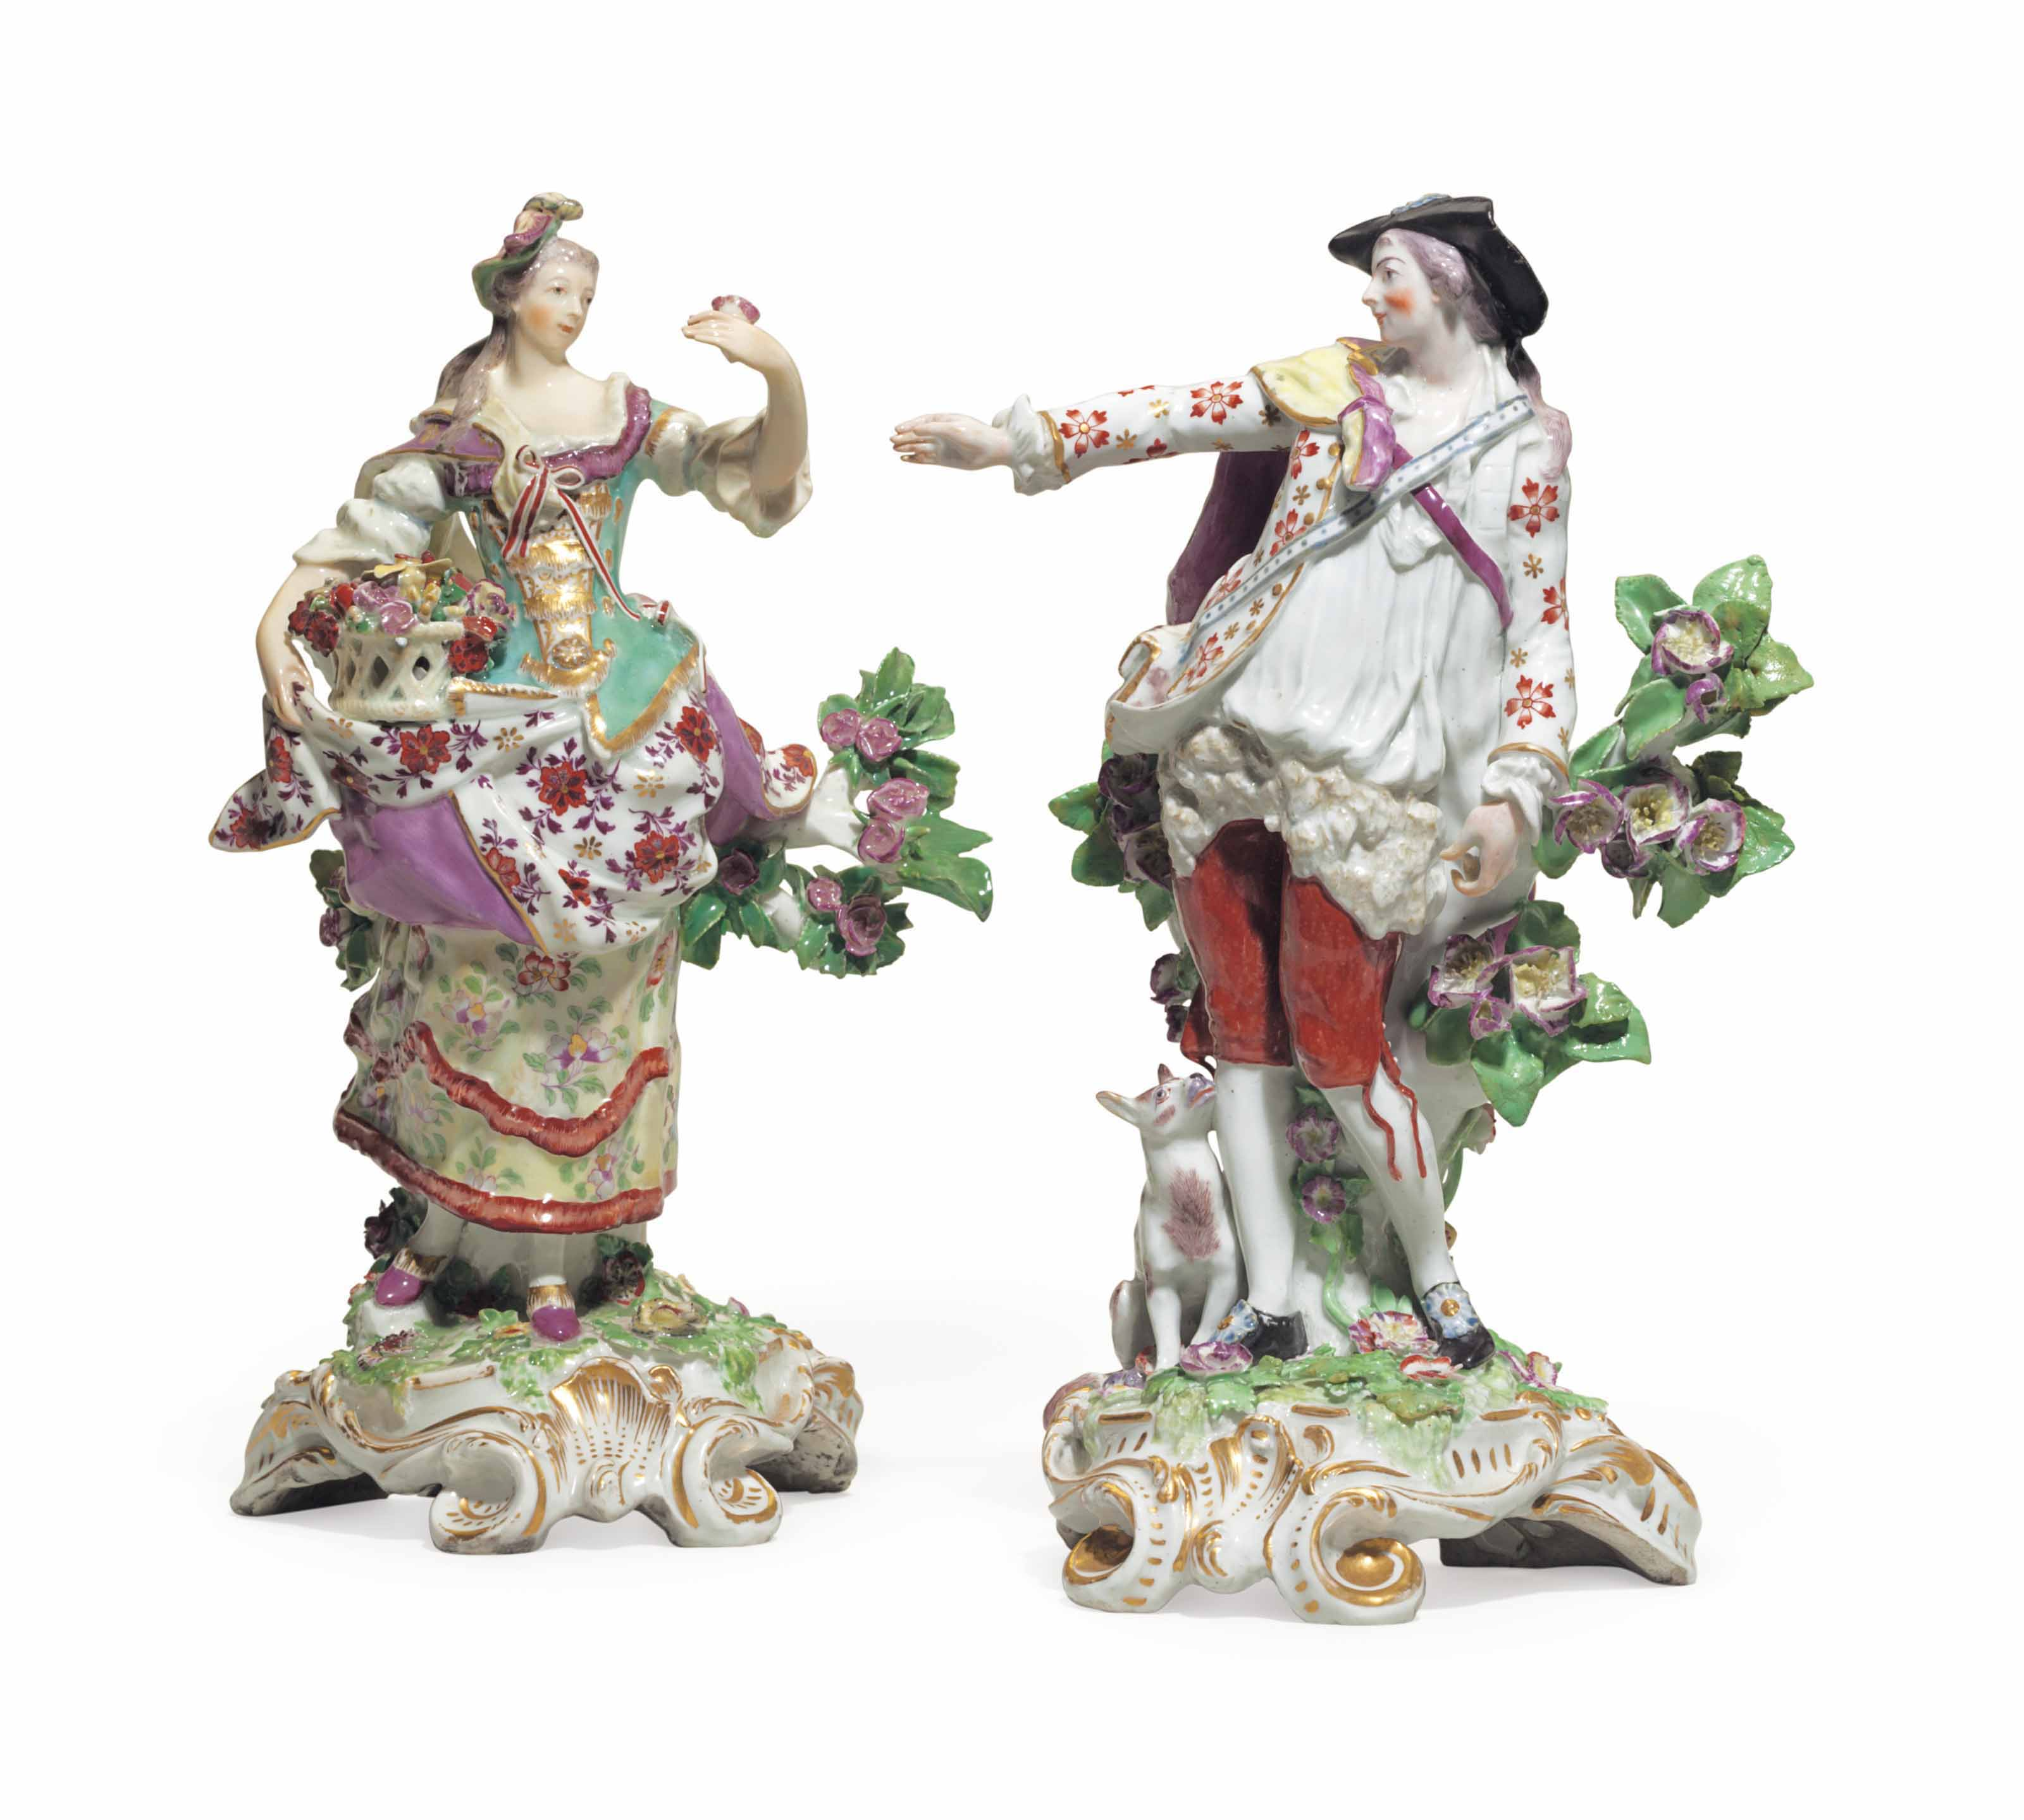 A pair of Chelsea porcelain figures of an imperial shepherd and shepherdess, circa 1765. 11¾  in (29.9  cm) high, the shepherdess. Sold for $6,875 on 10 May 2018 at Christie's in New York